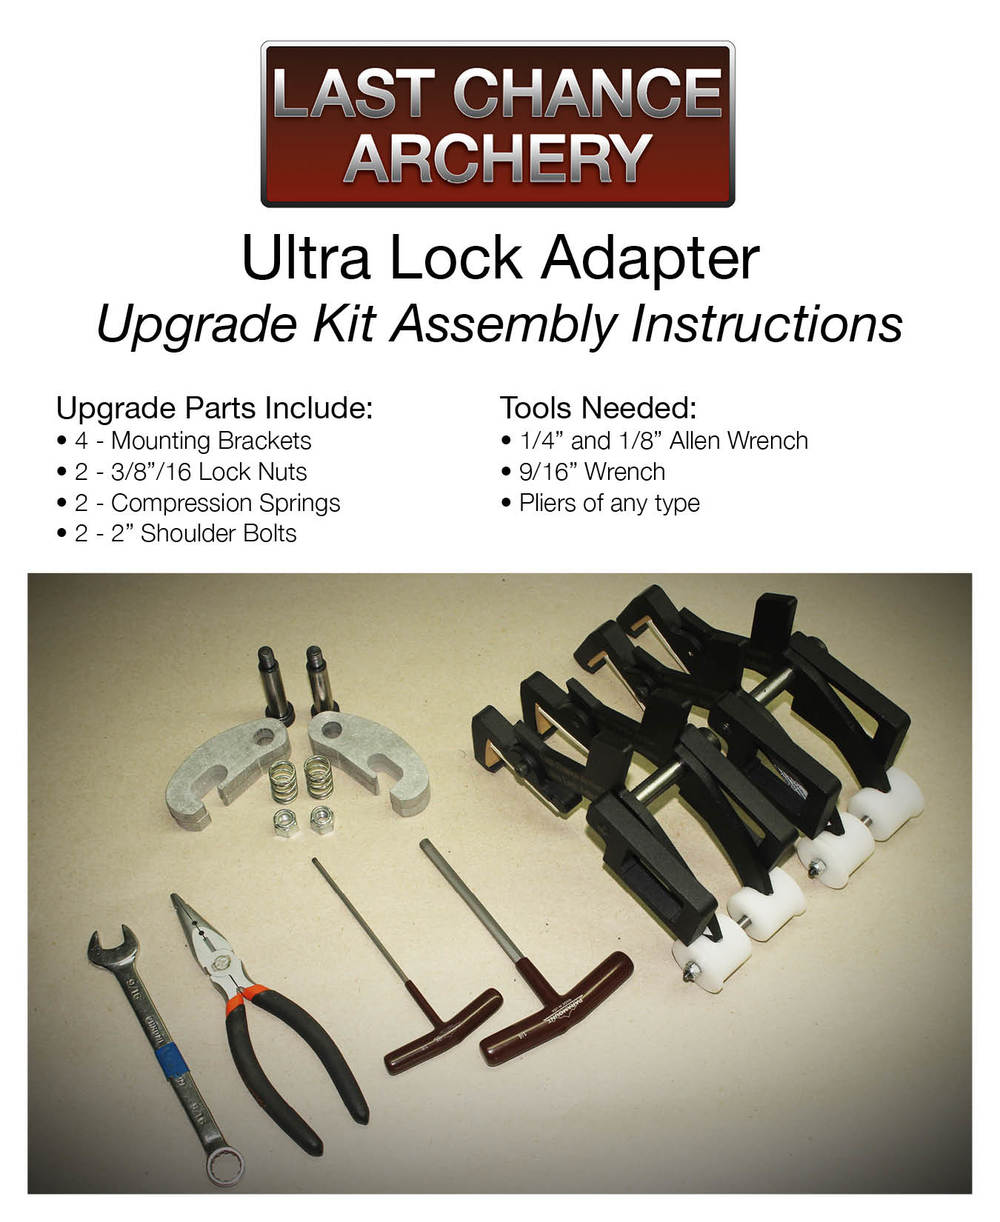 Upgrade Kit Assembly Instructions.jpg